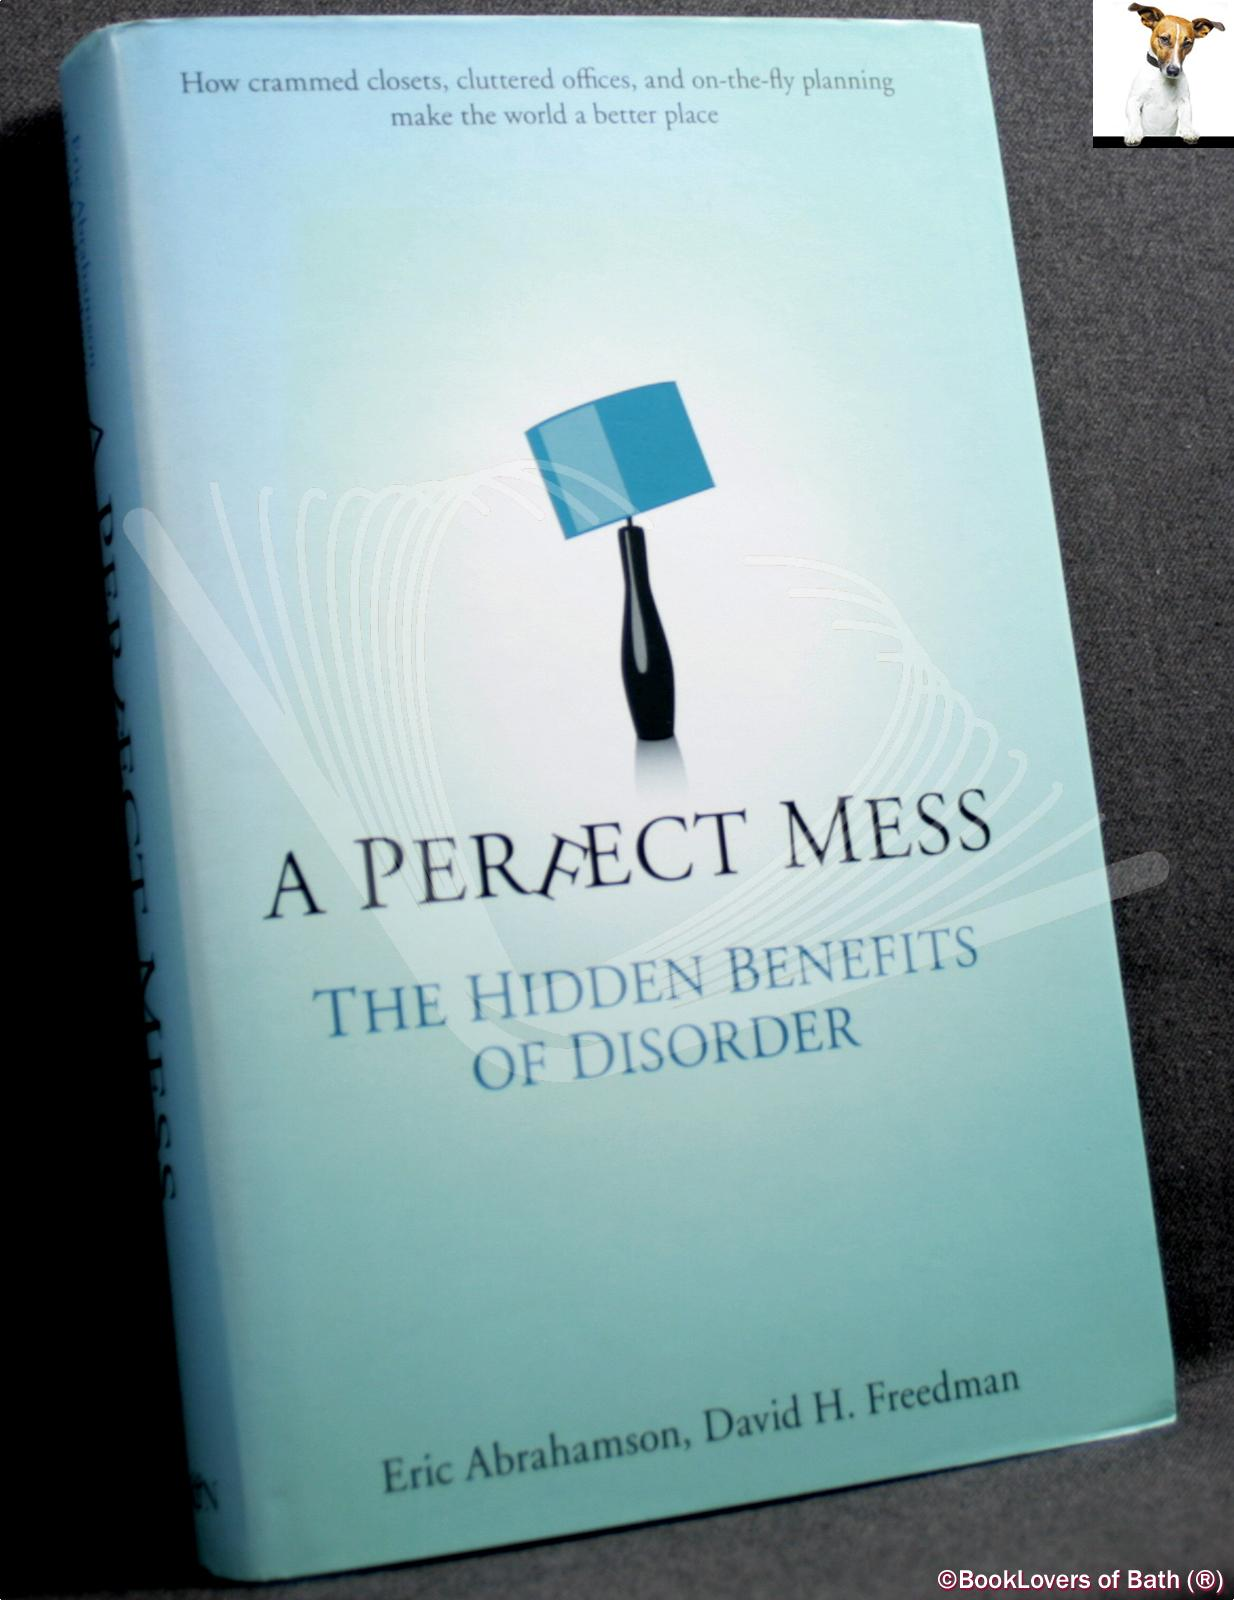 A Perfect Mess: The Hidden Benefits of Disorder: How Crammed Closets, Cluttered Offices, and On-the-fly Planning Make the World a Better Place - Eric Abrahamson & David H. Freedman